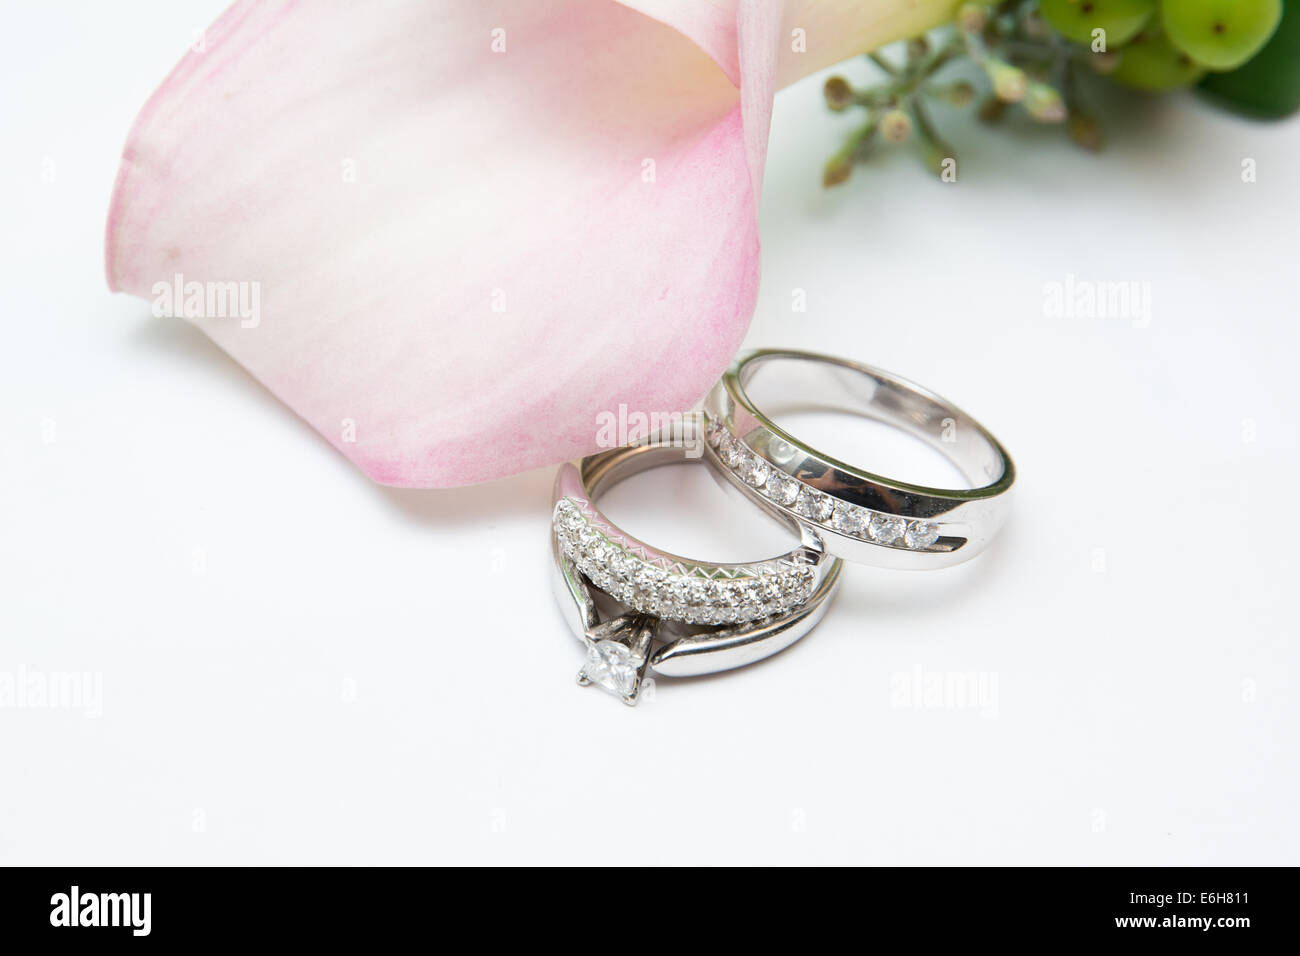 White Gold And Diamond Wedding Rings And An Engagement Ring